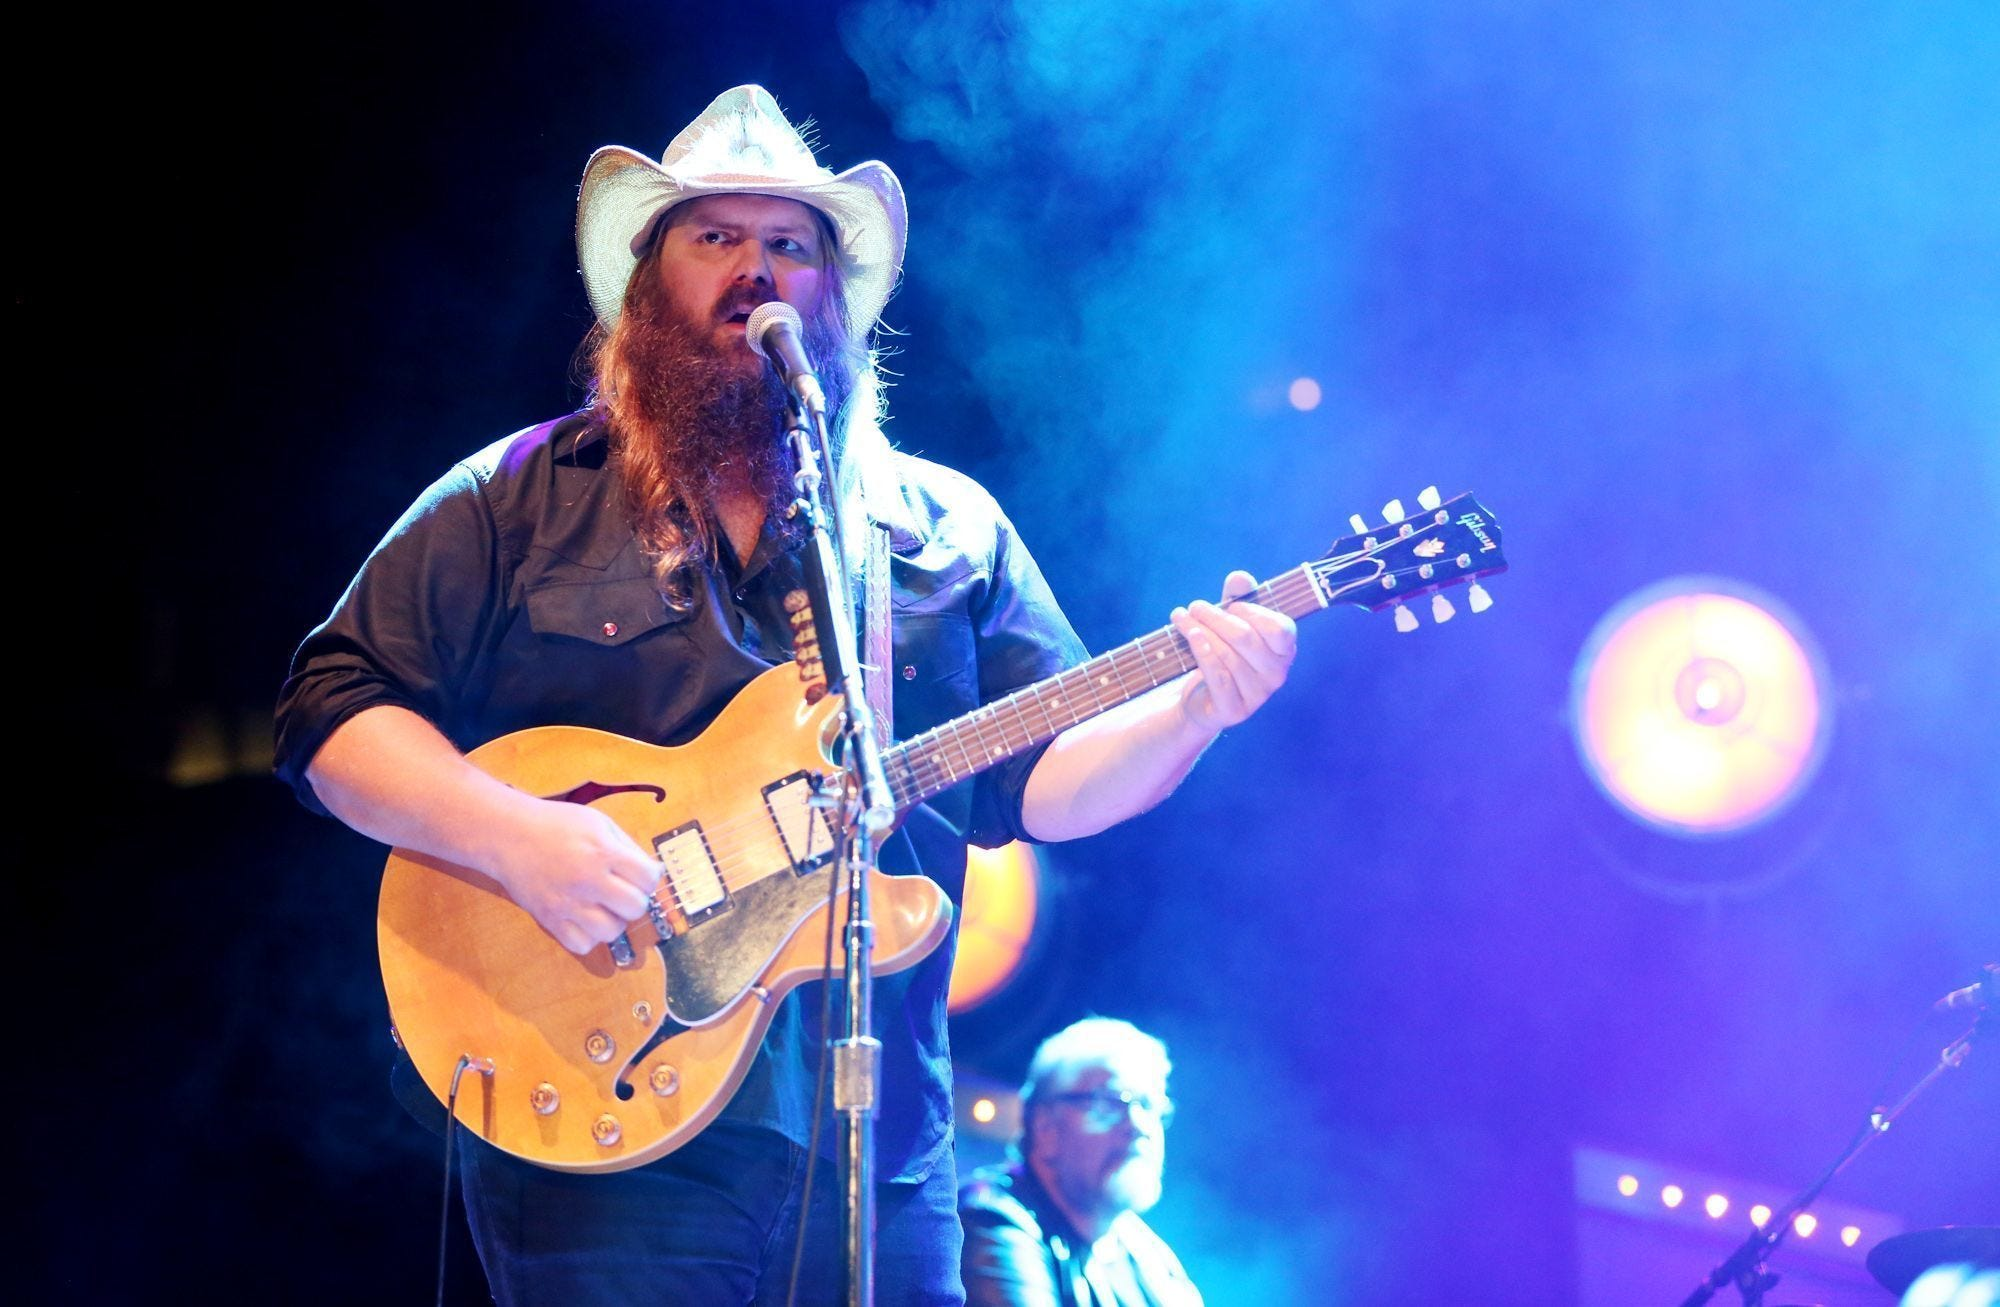 Chris Stapleton announces All American Road Show tour with guests Willie Nelson, Sheryl Crow